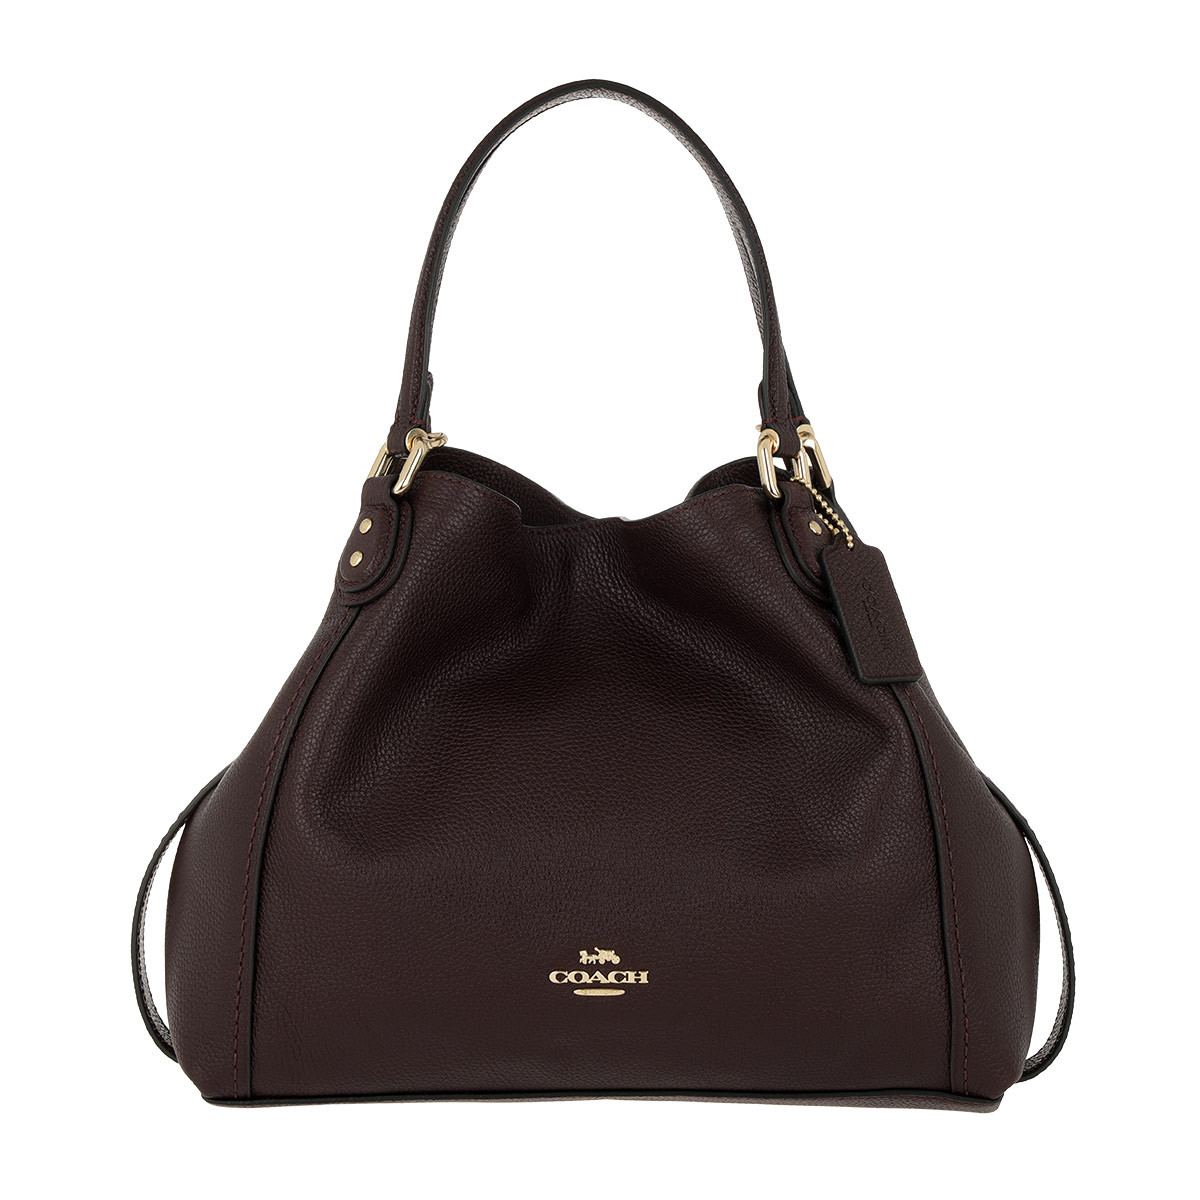 Coach Tote - Polished Pebble Leather Edie 28 Shoulder Bag Oxblood - in lila - für Damen